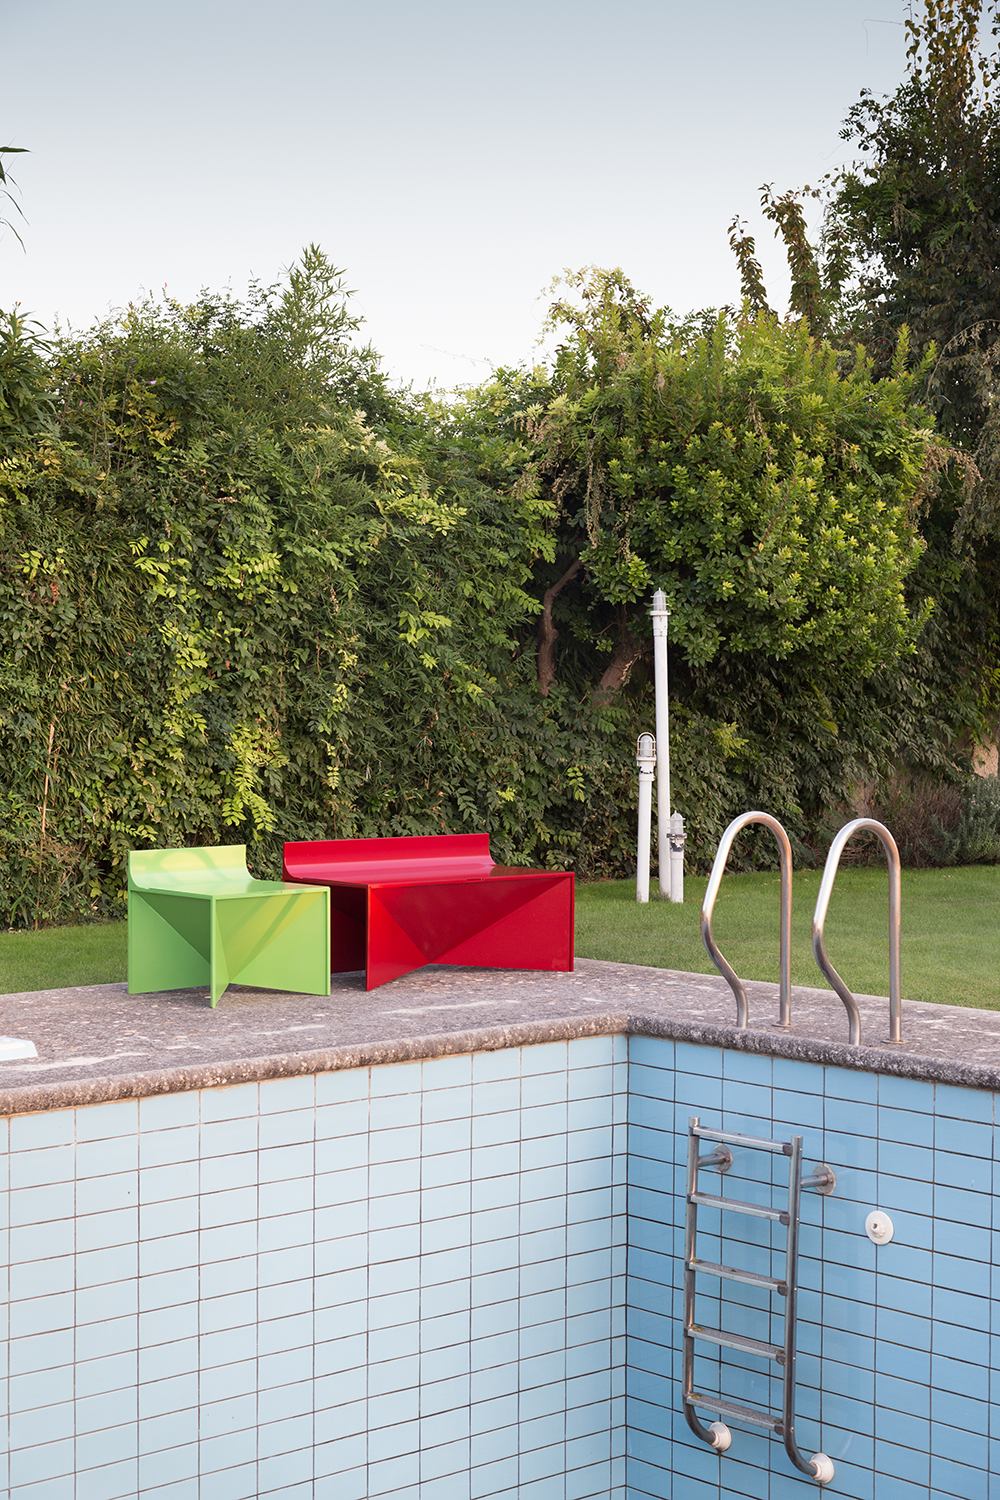 metal outdoor chair and bench by pool